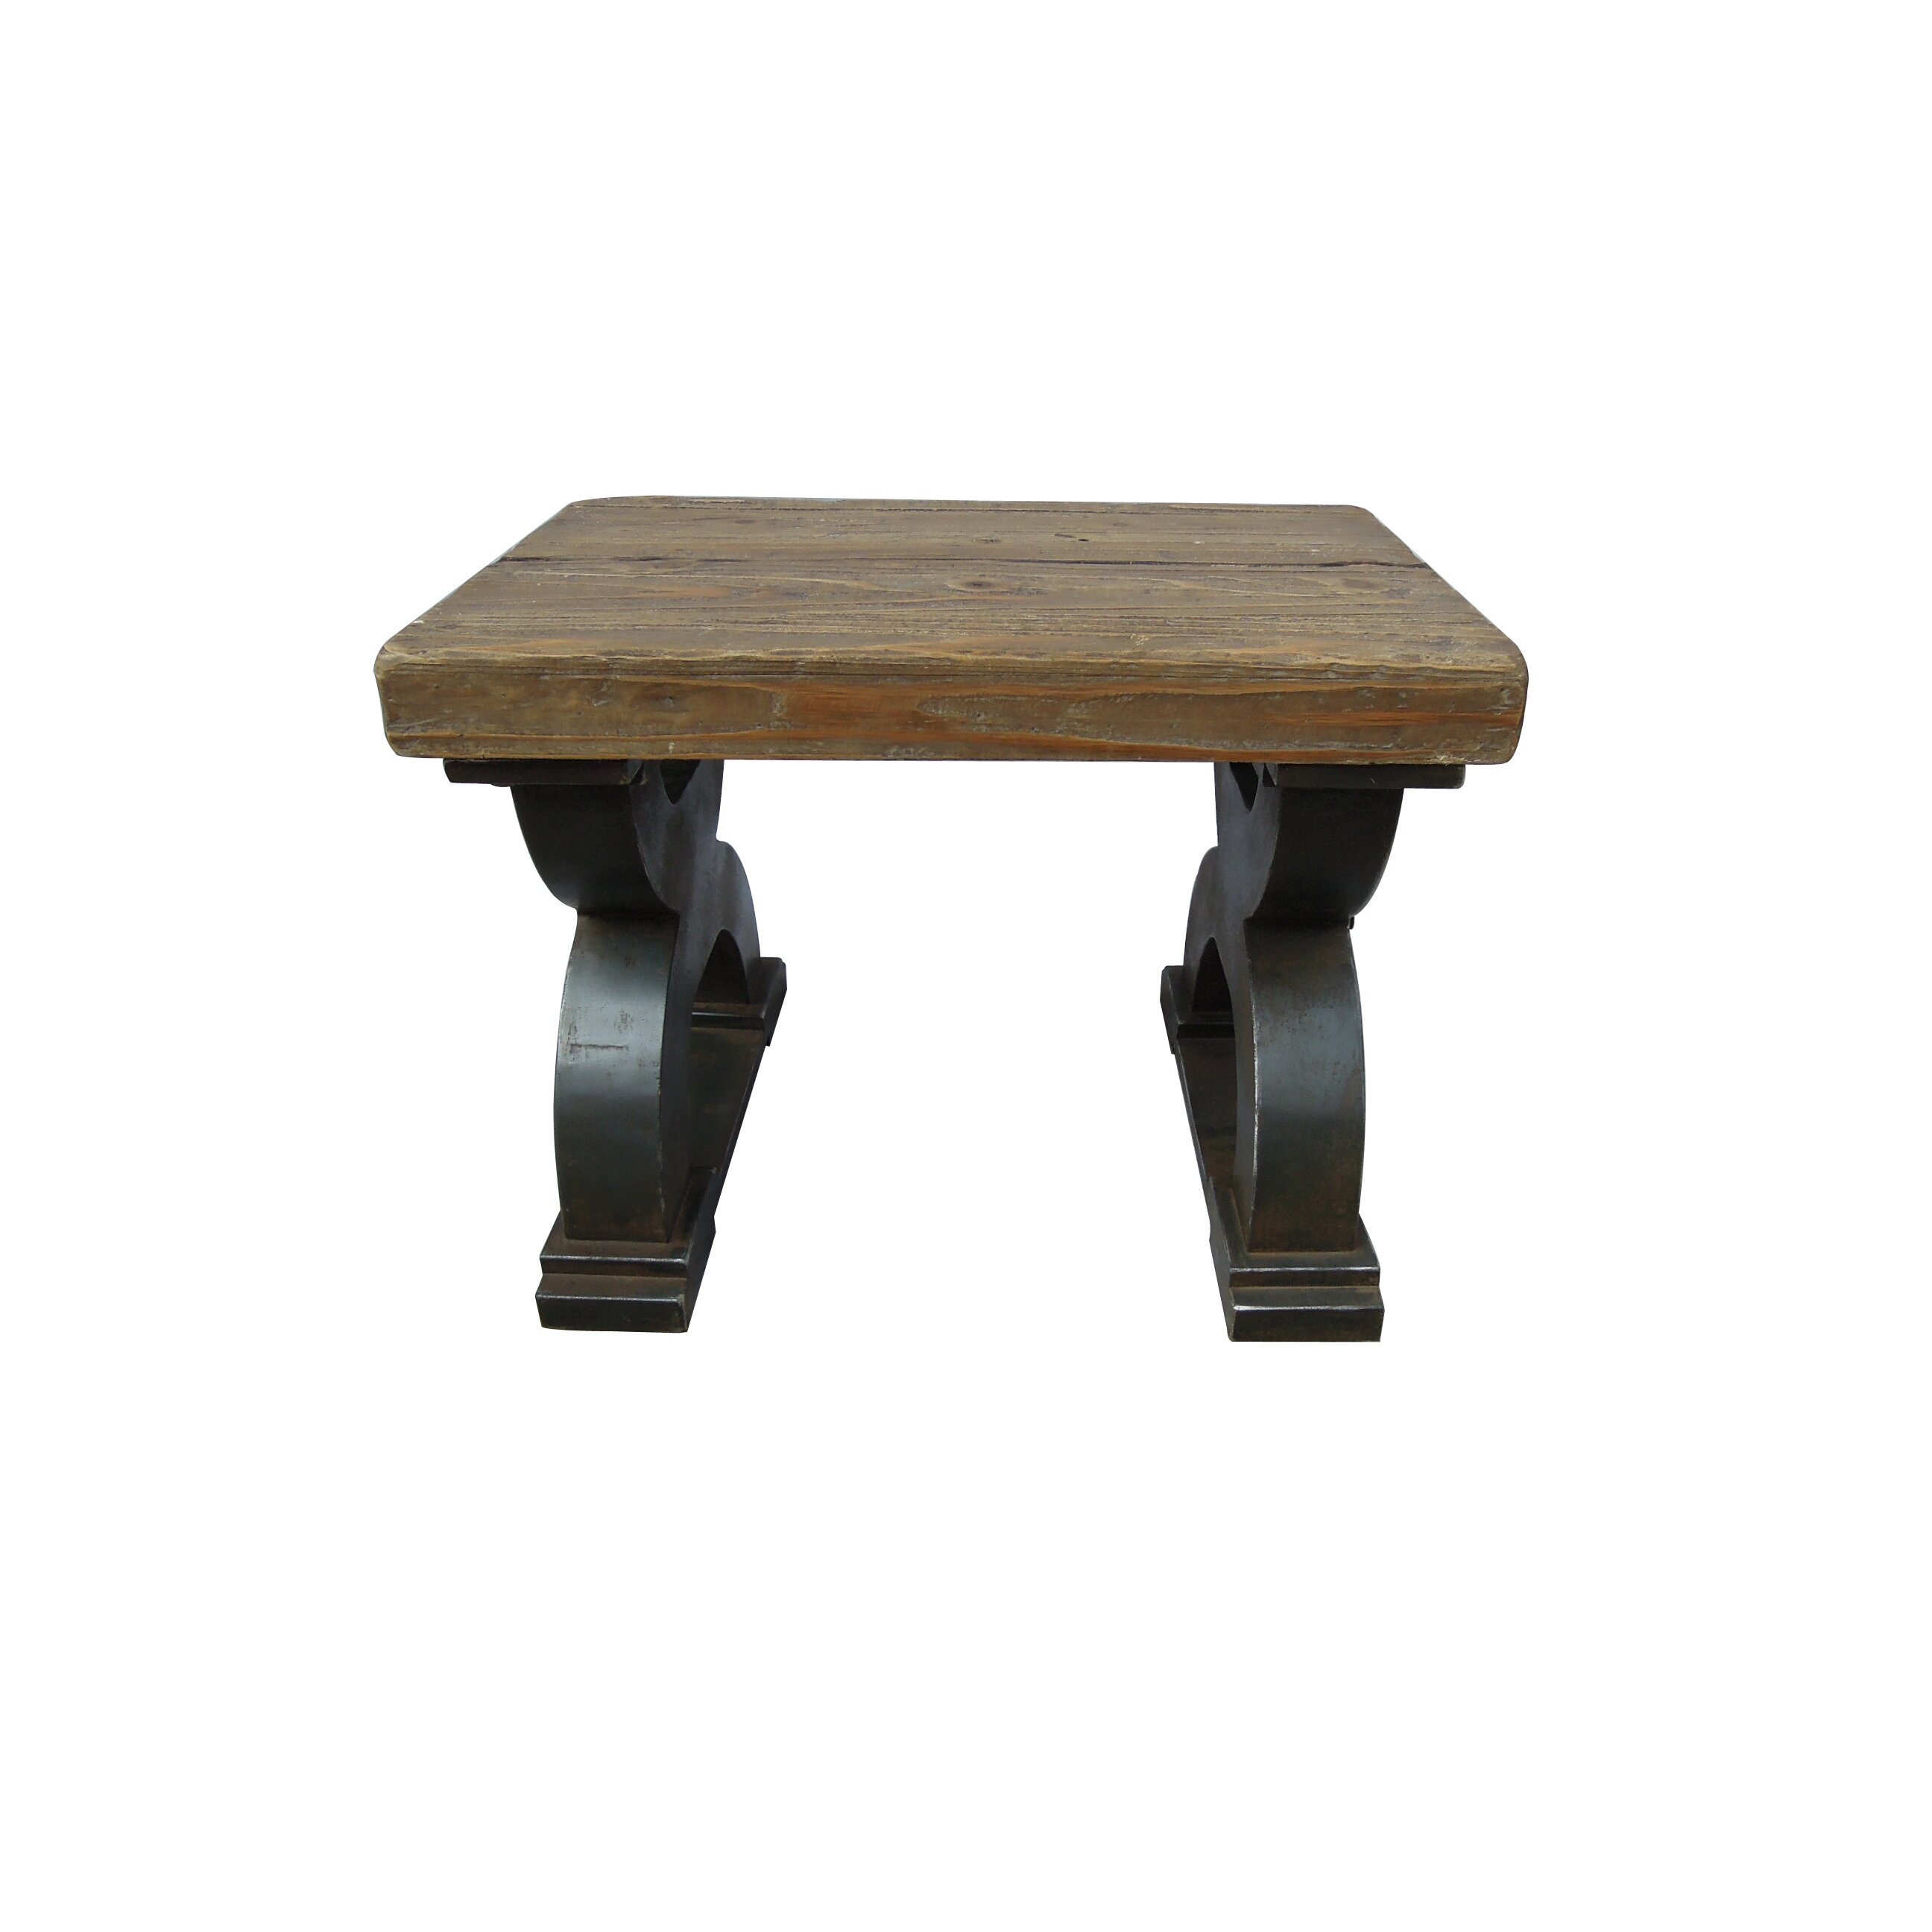 ... Caravan Rustic Forge Wood Entryway Bench & Reviews  Wayfair